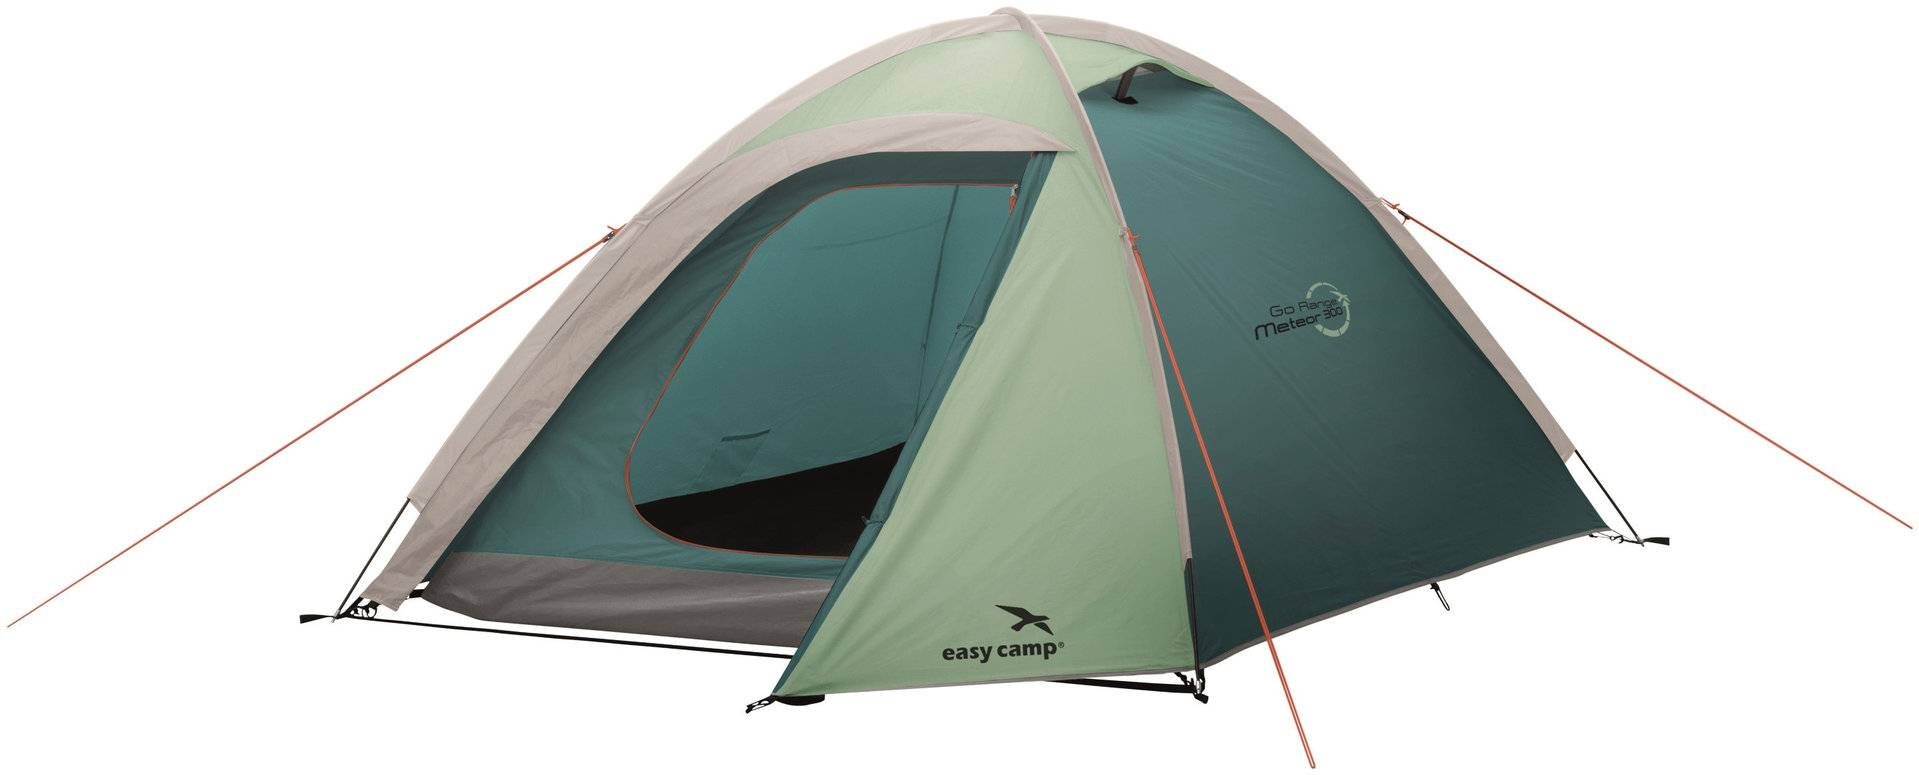 Easy Camp Meteor 300 Tent  - Size: One Size